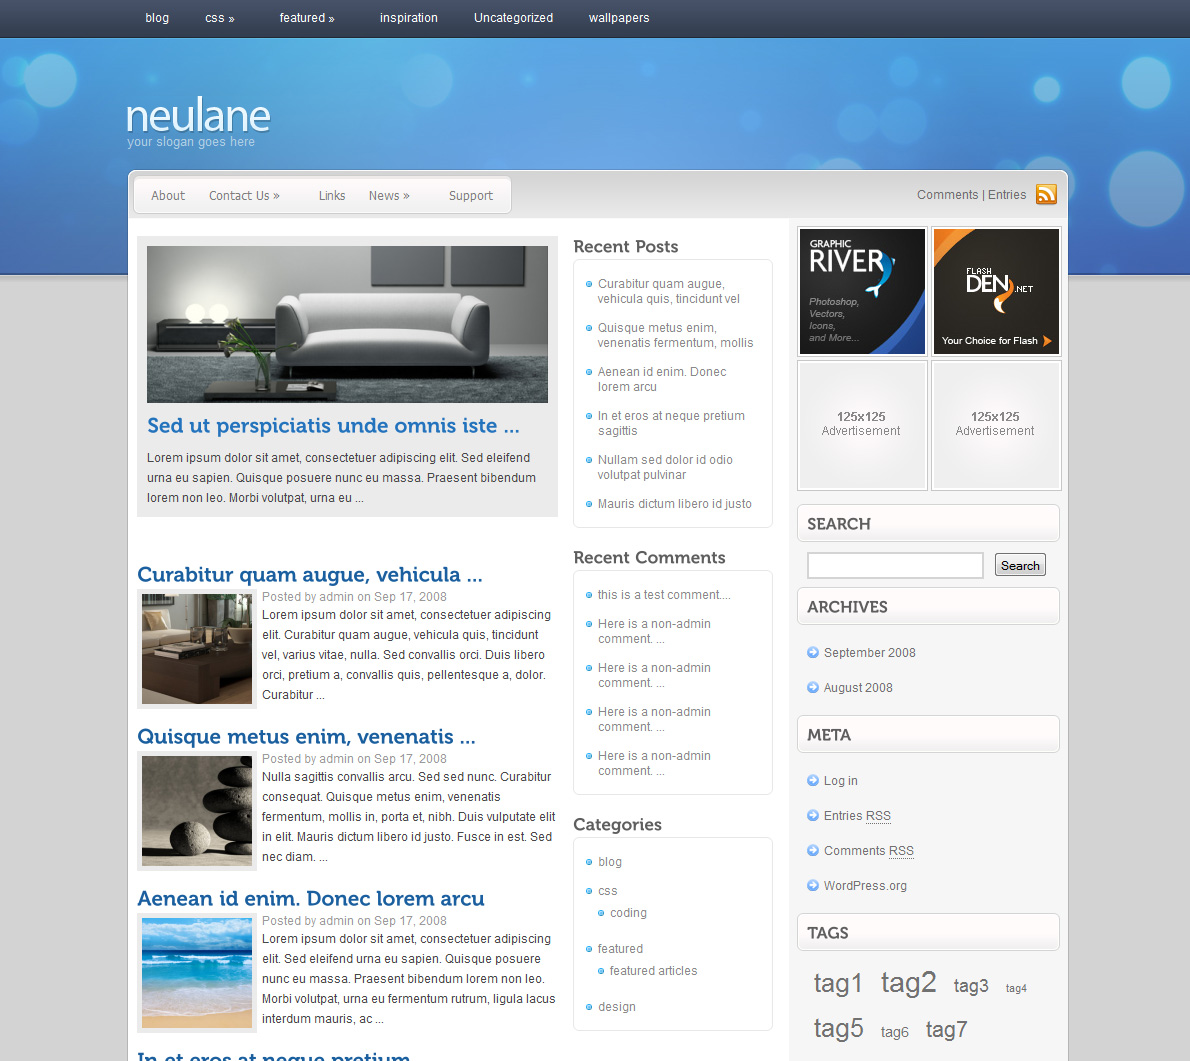 neulane - Homepage screenshot of neulane. 1 Featured post, 3 column.